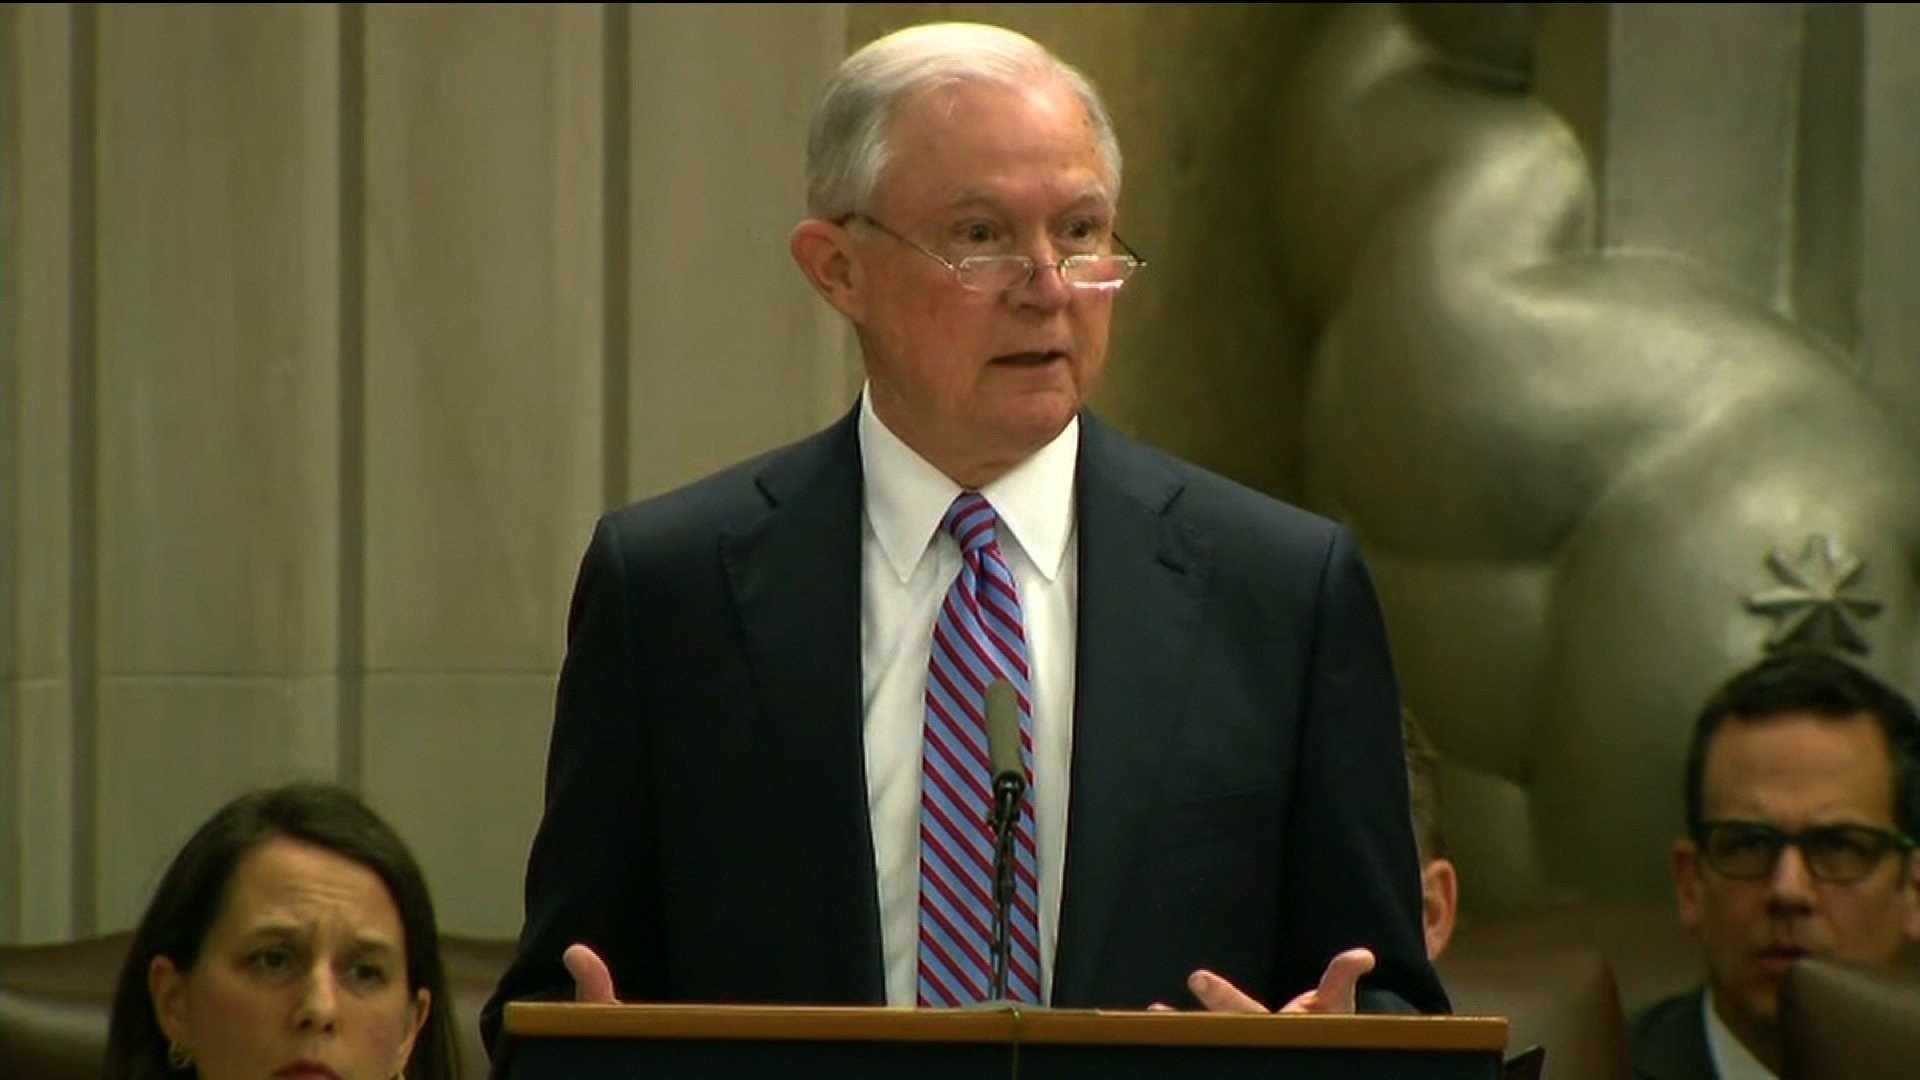 Attorney General Jeff Sessions. courtesy CNN.